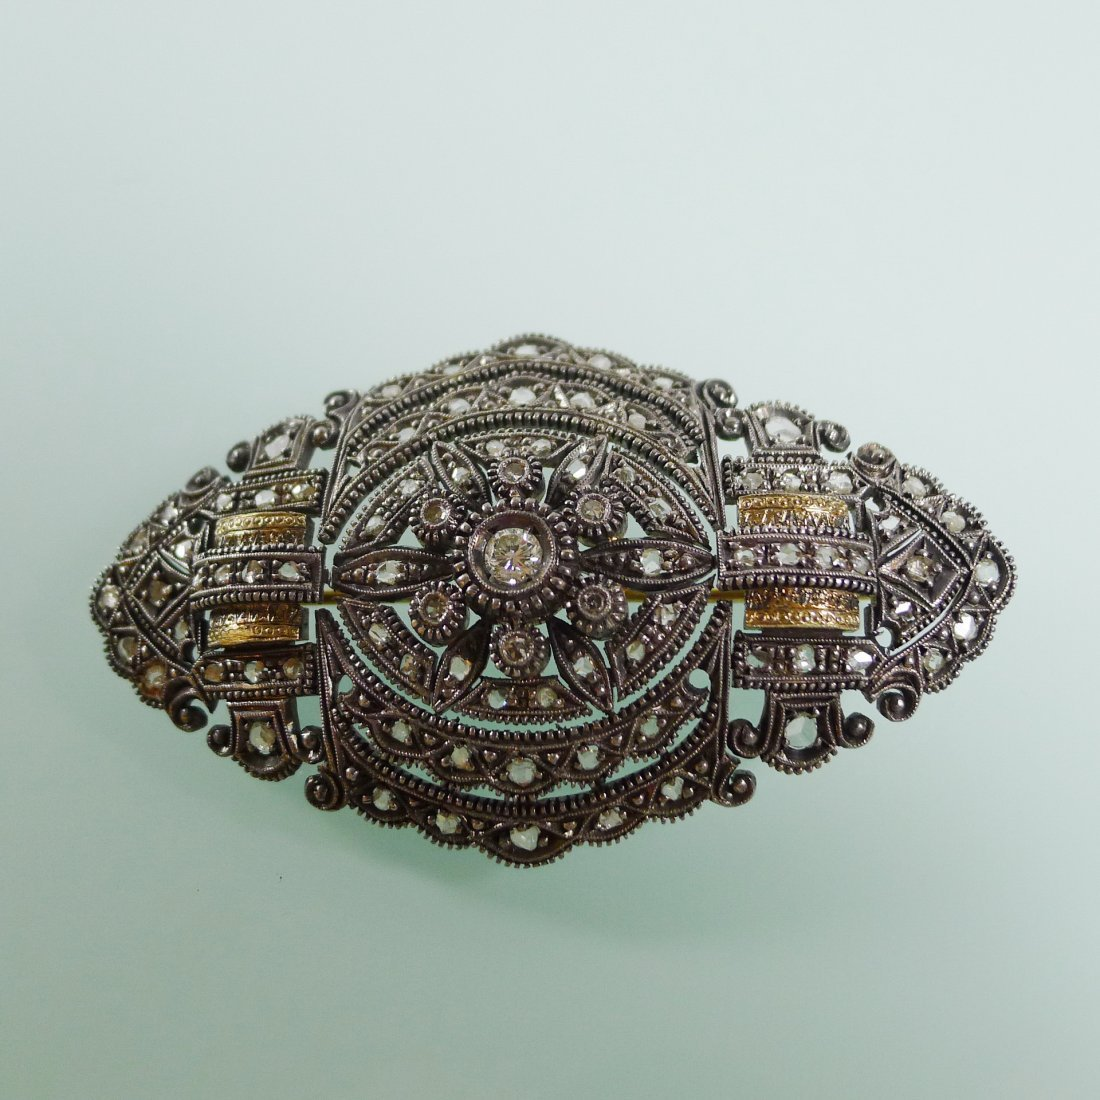 THE PORTUGAL BROOCH